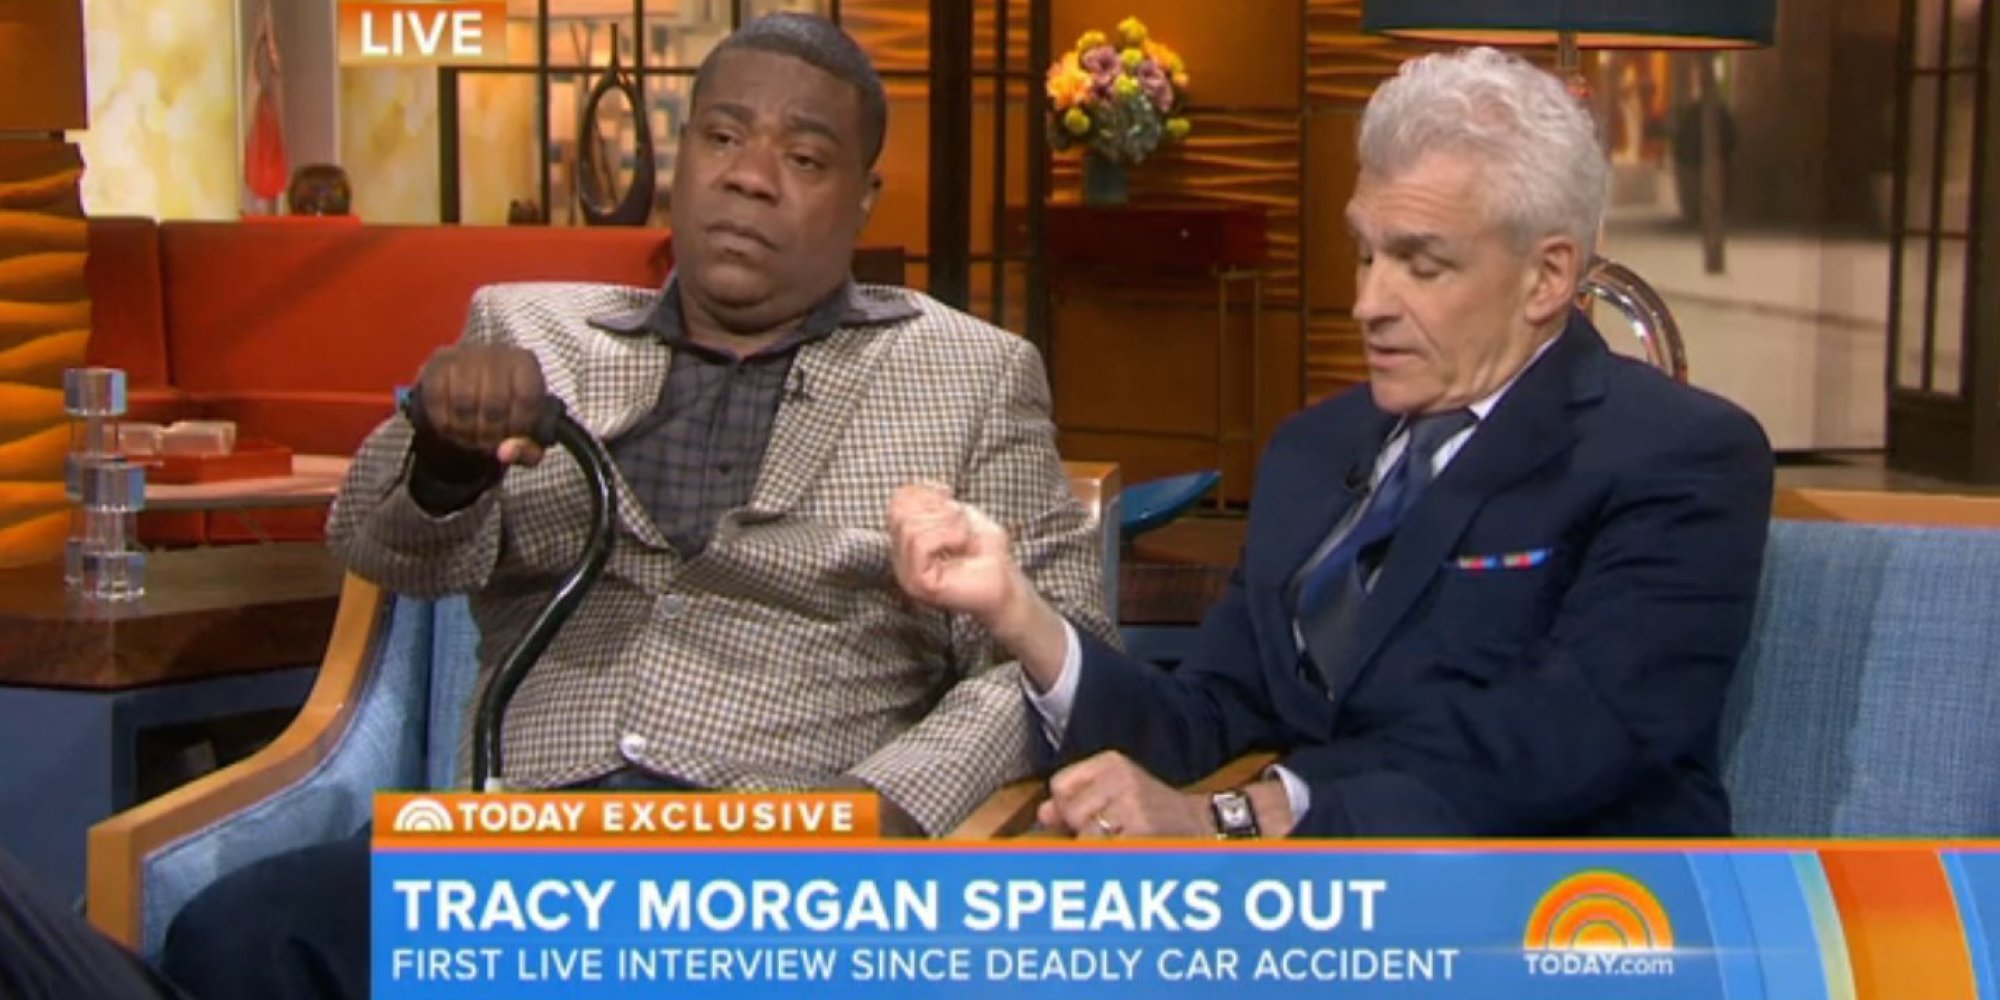 Where Was Tracy Morgan When He Had His Car Accident